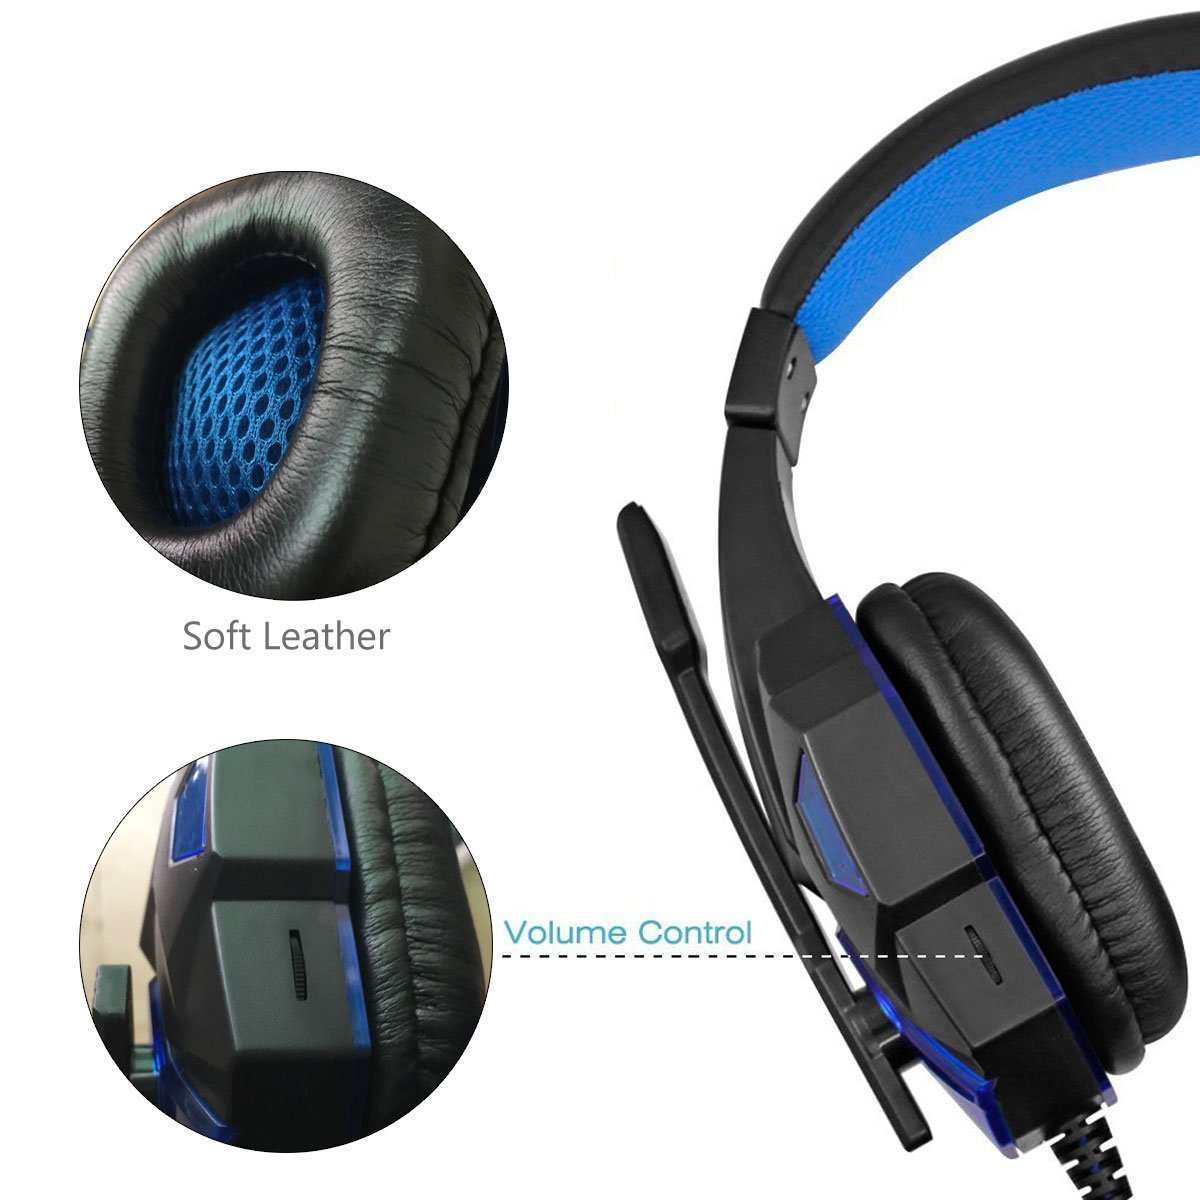 Gaming Headset for PS4 Xbox One, hyfanda Over Ear Gaming Headphones with Mic, Stereo Bass Surround, Noise Reduction, LED Lights and Volume Control for Laptop, PC, Mac, iPad, Smartphones (Blackblue)